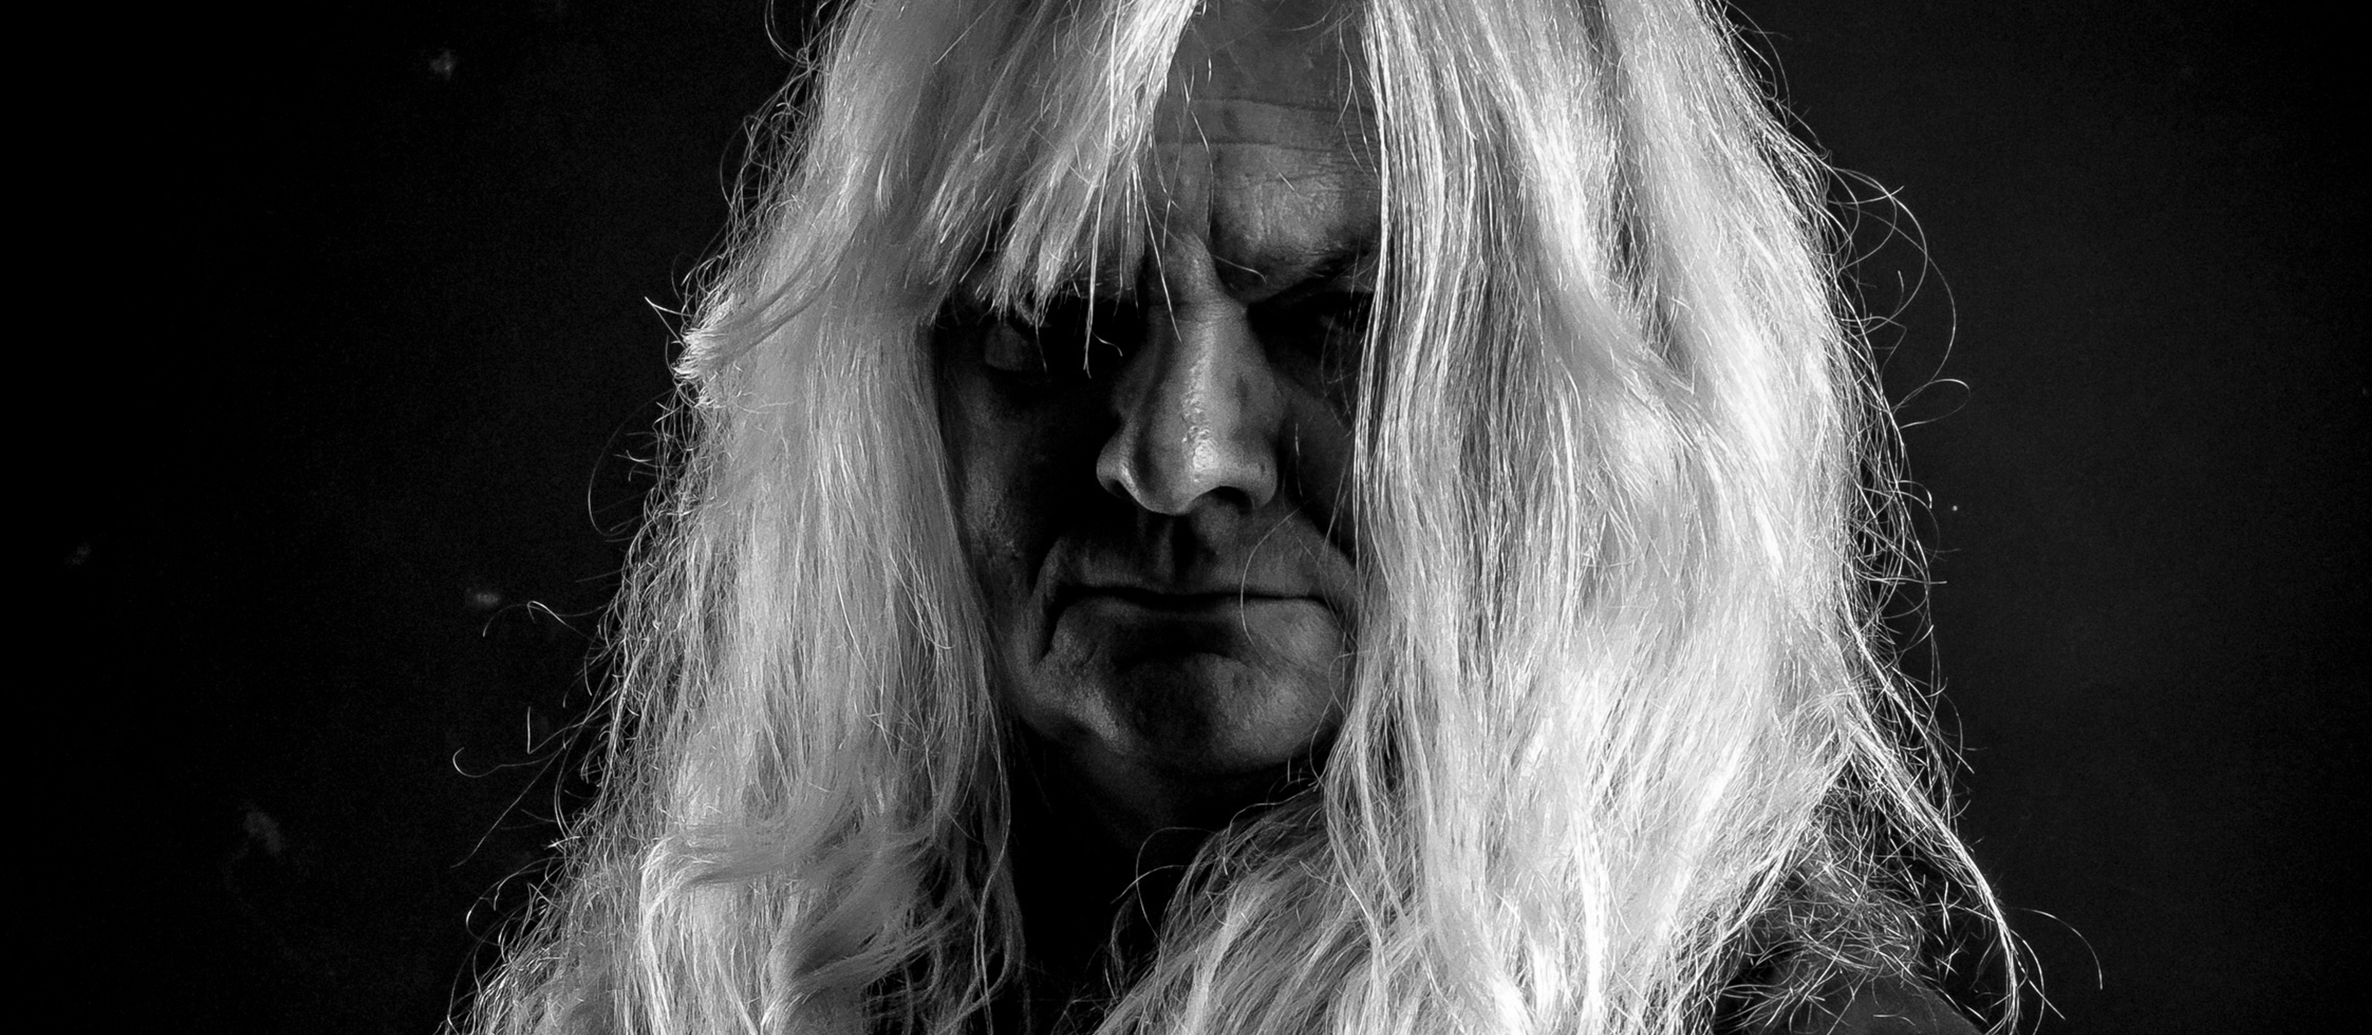 PRIDE BEFORE A FALL – Steve Grimmett talks about the rise and fall of Lionsheart, the melodic rock band he fronted in the Nineties.